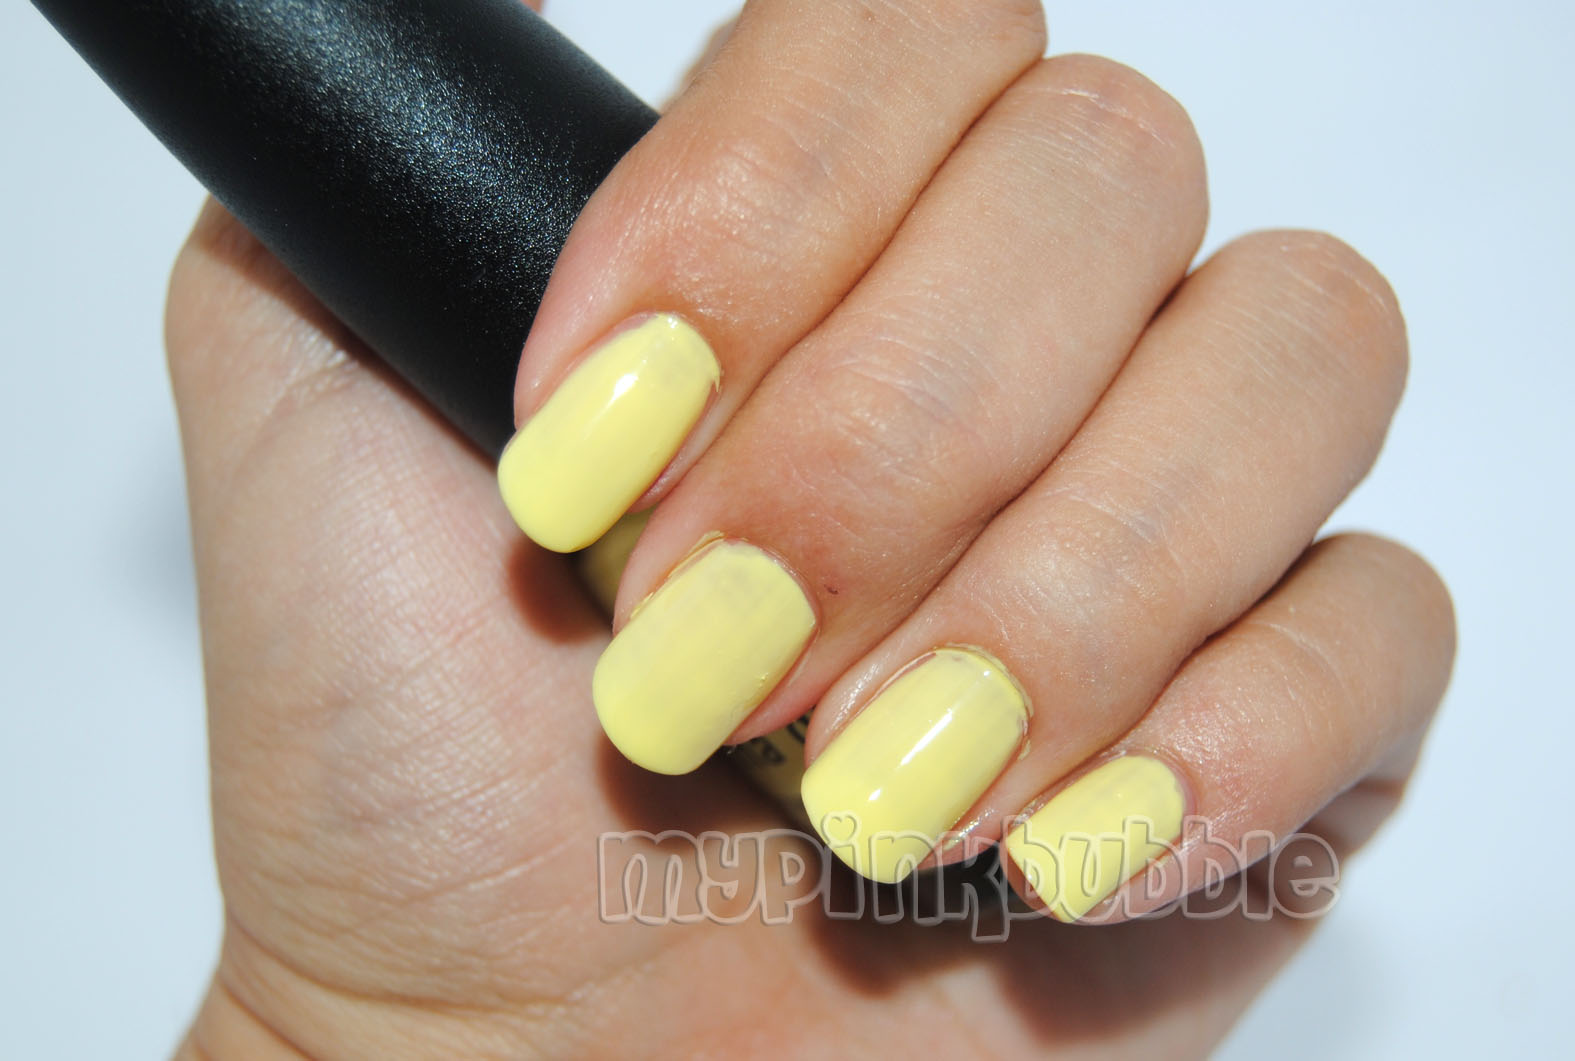 China Glaze Sun upon my skin swatch 2